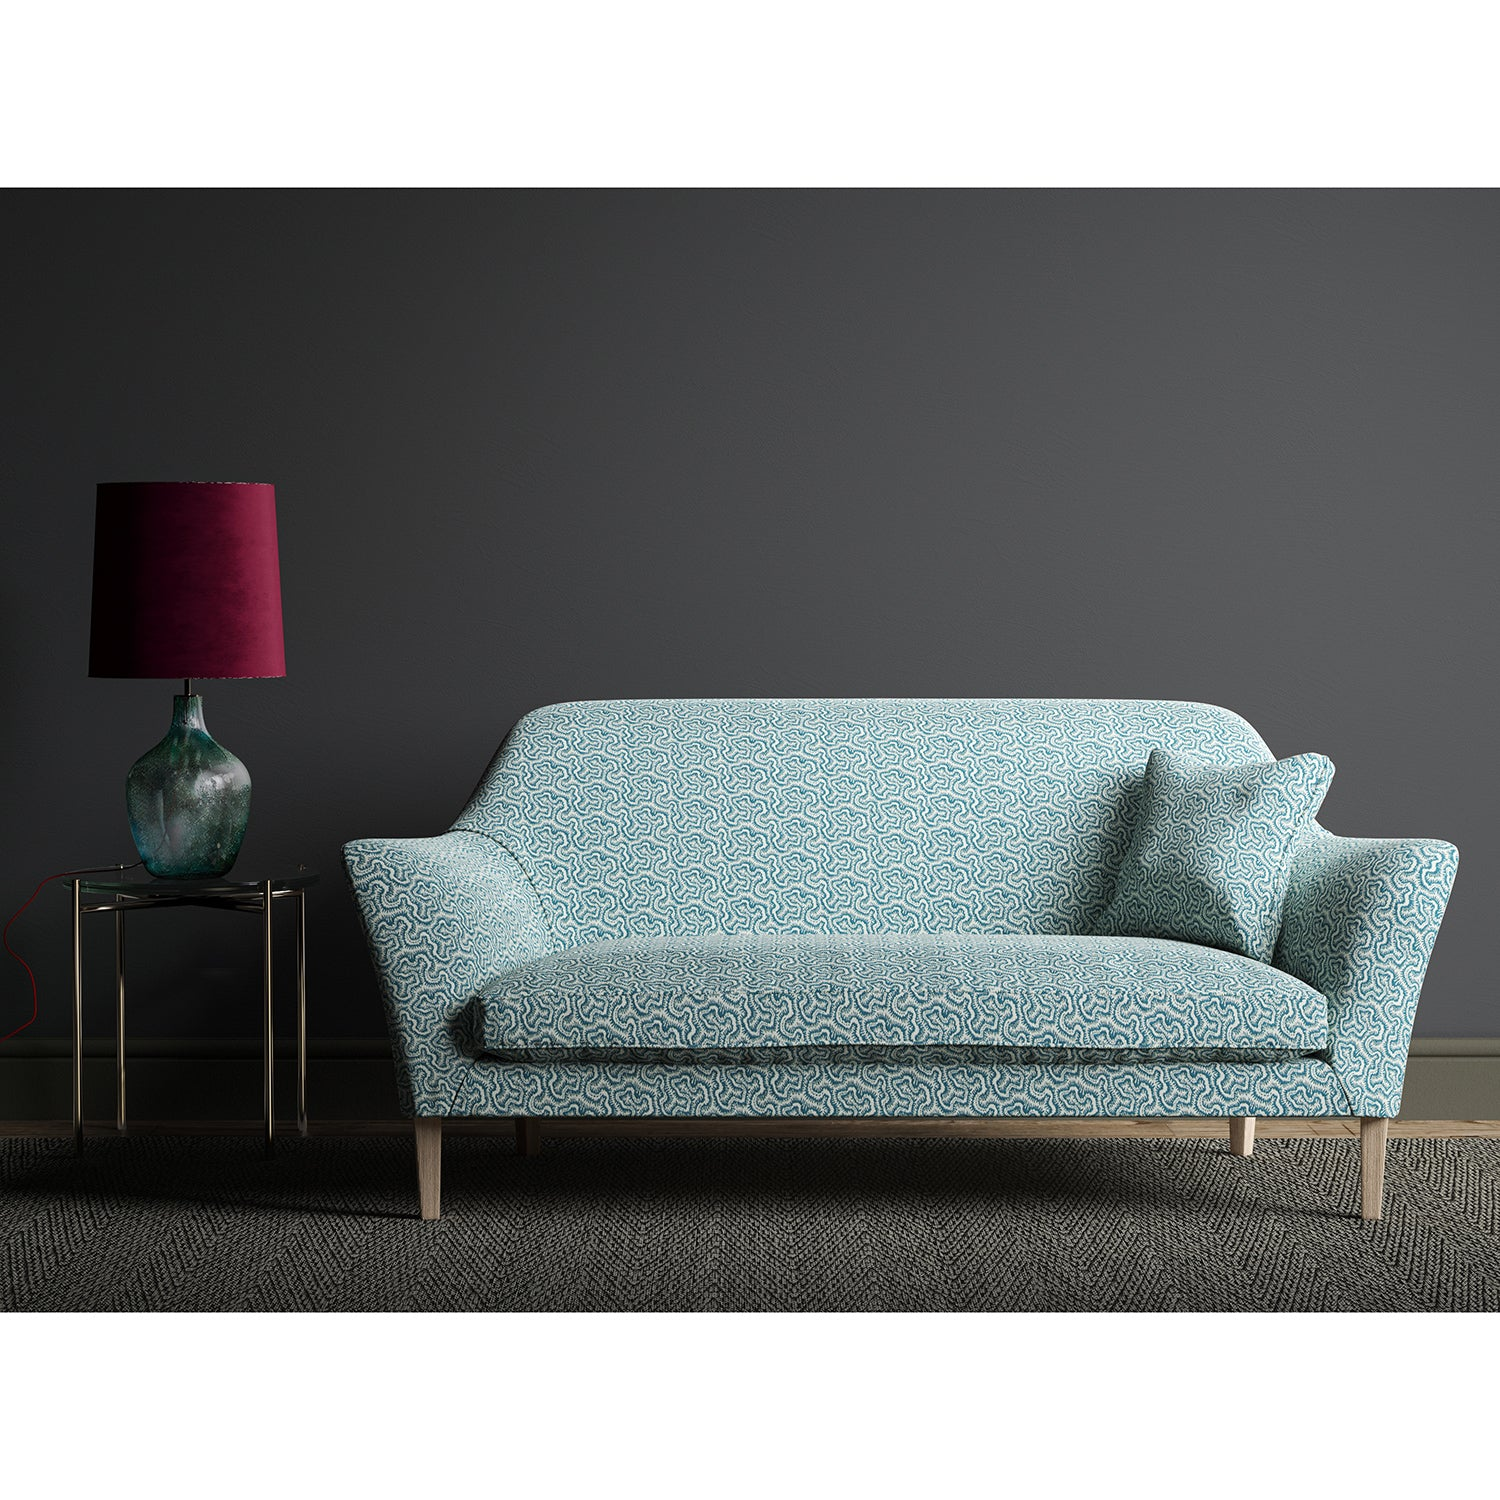 Sofa upholstered in a blue and white wavy weave fabric.